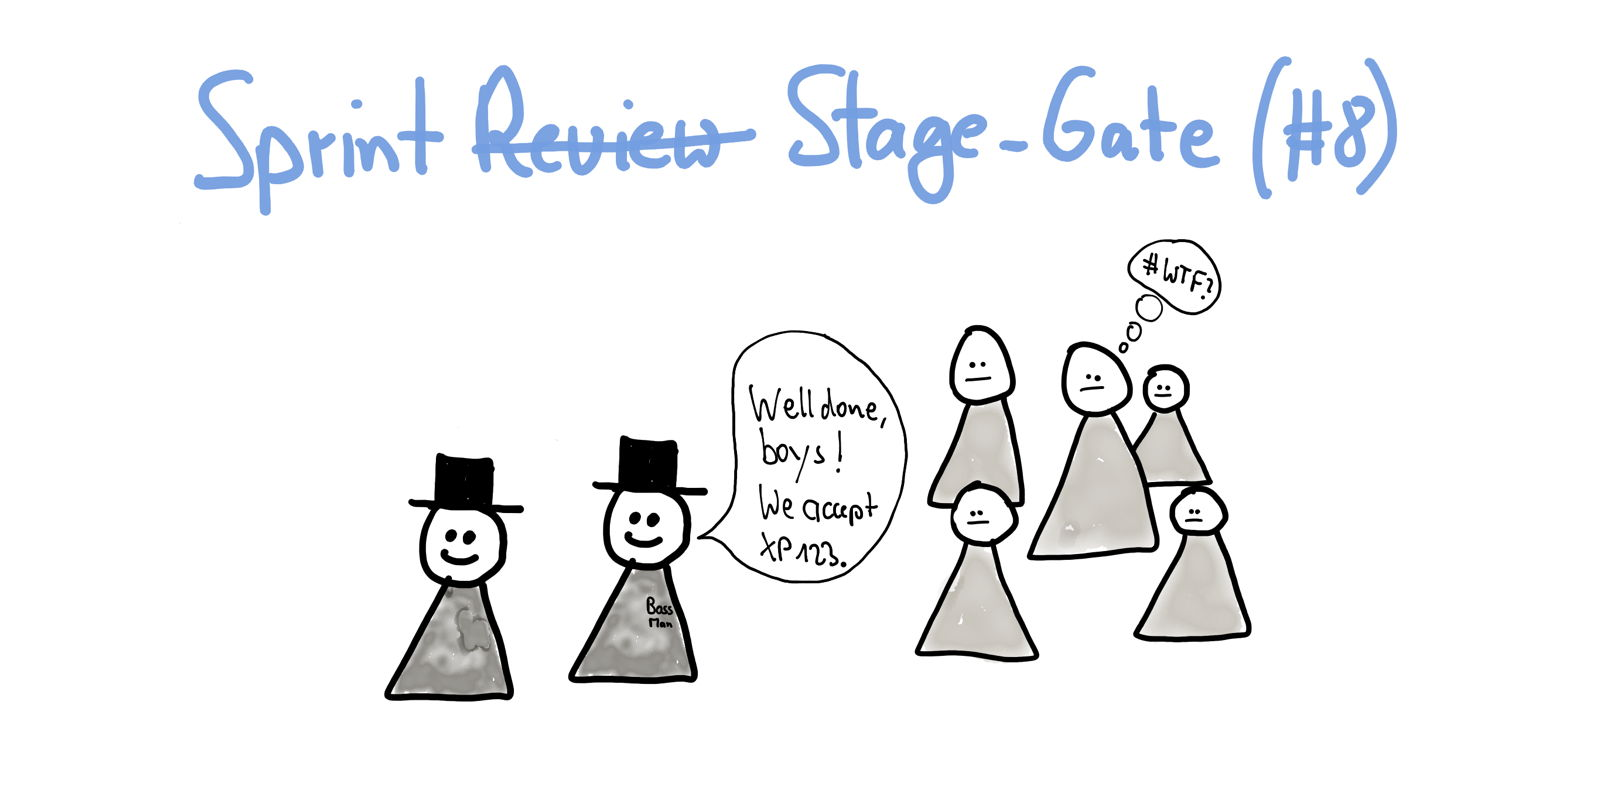 15 Sprint Review Anti-Patterns — Sprint Review à la Stage-Gate®